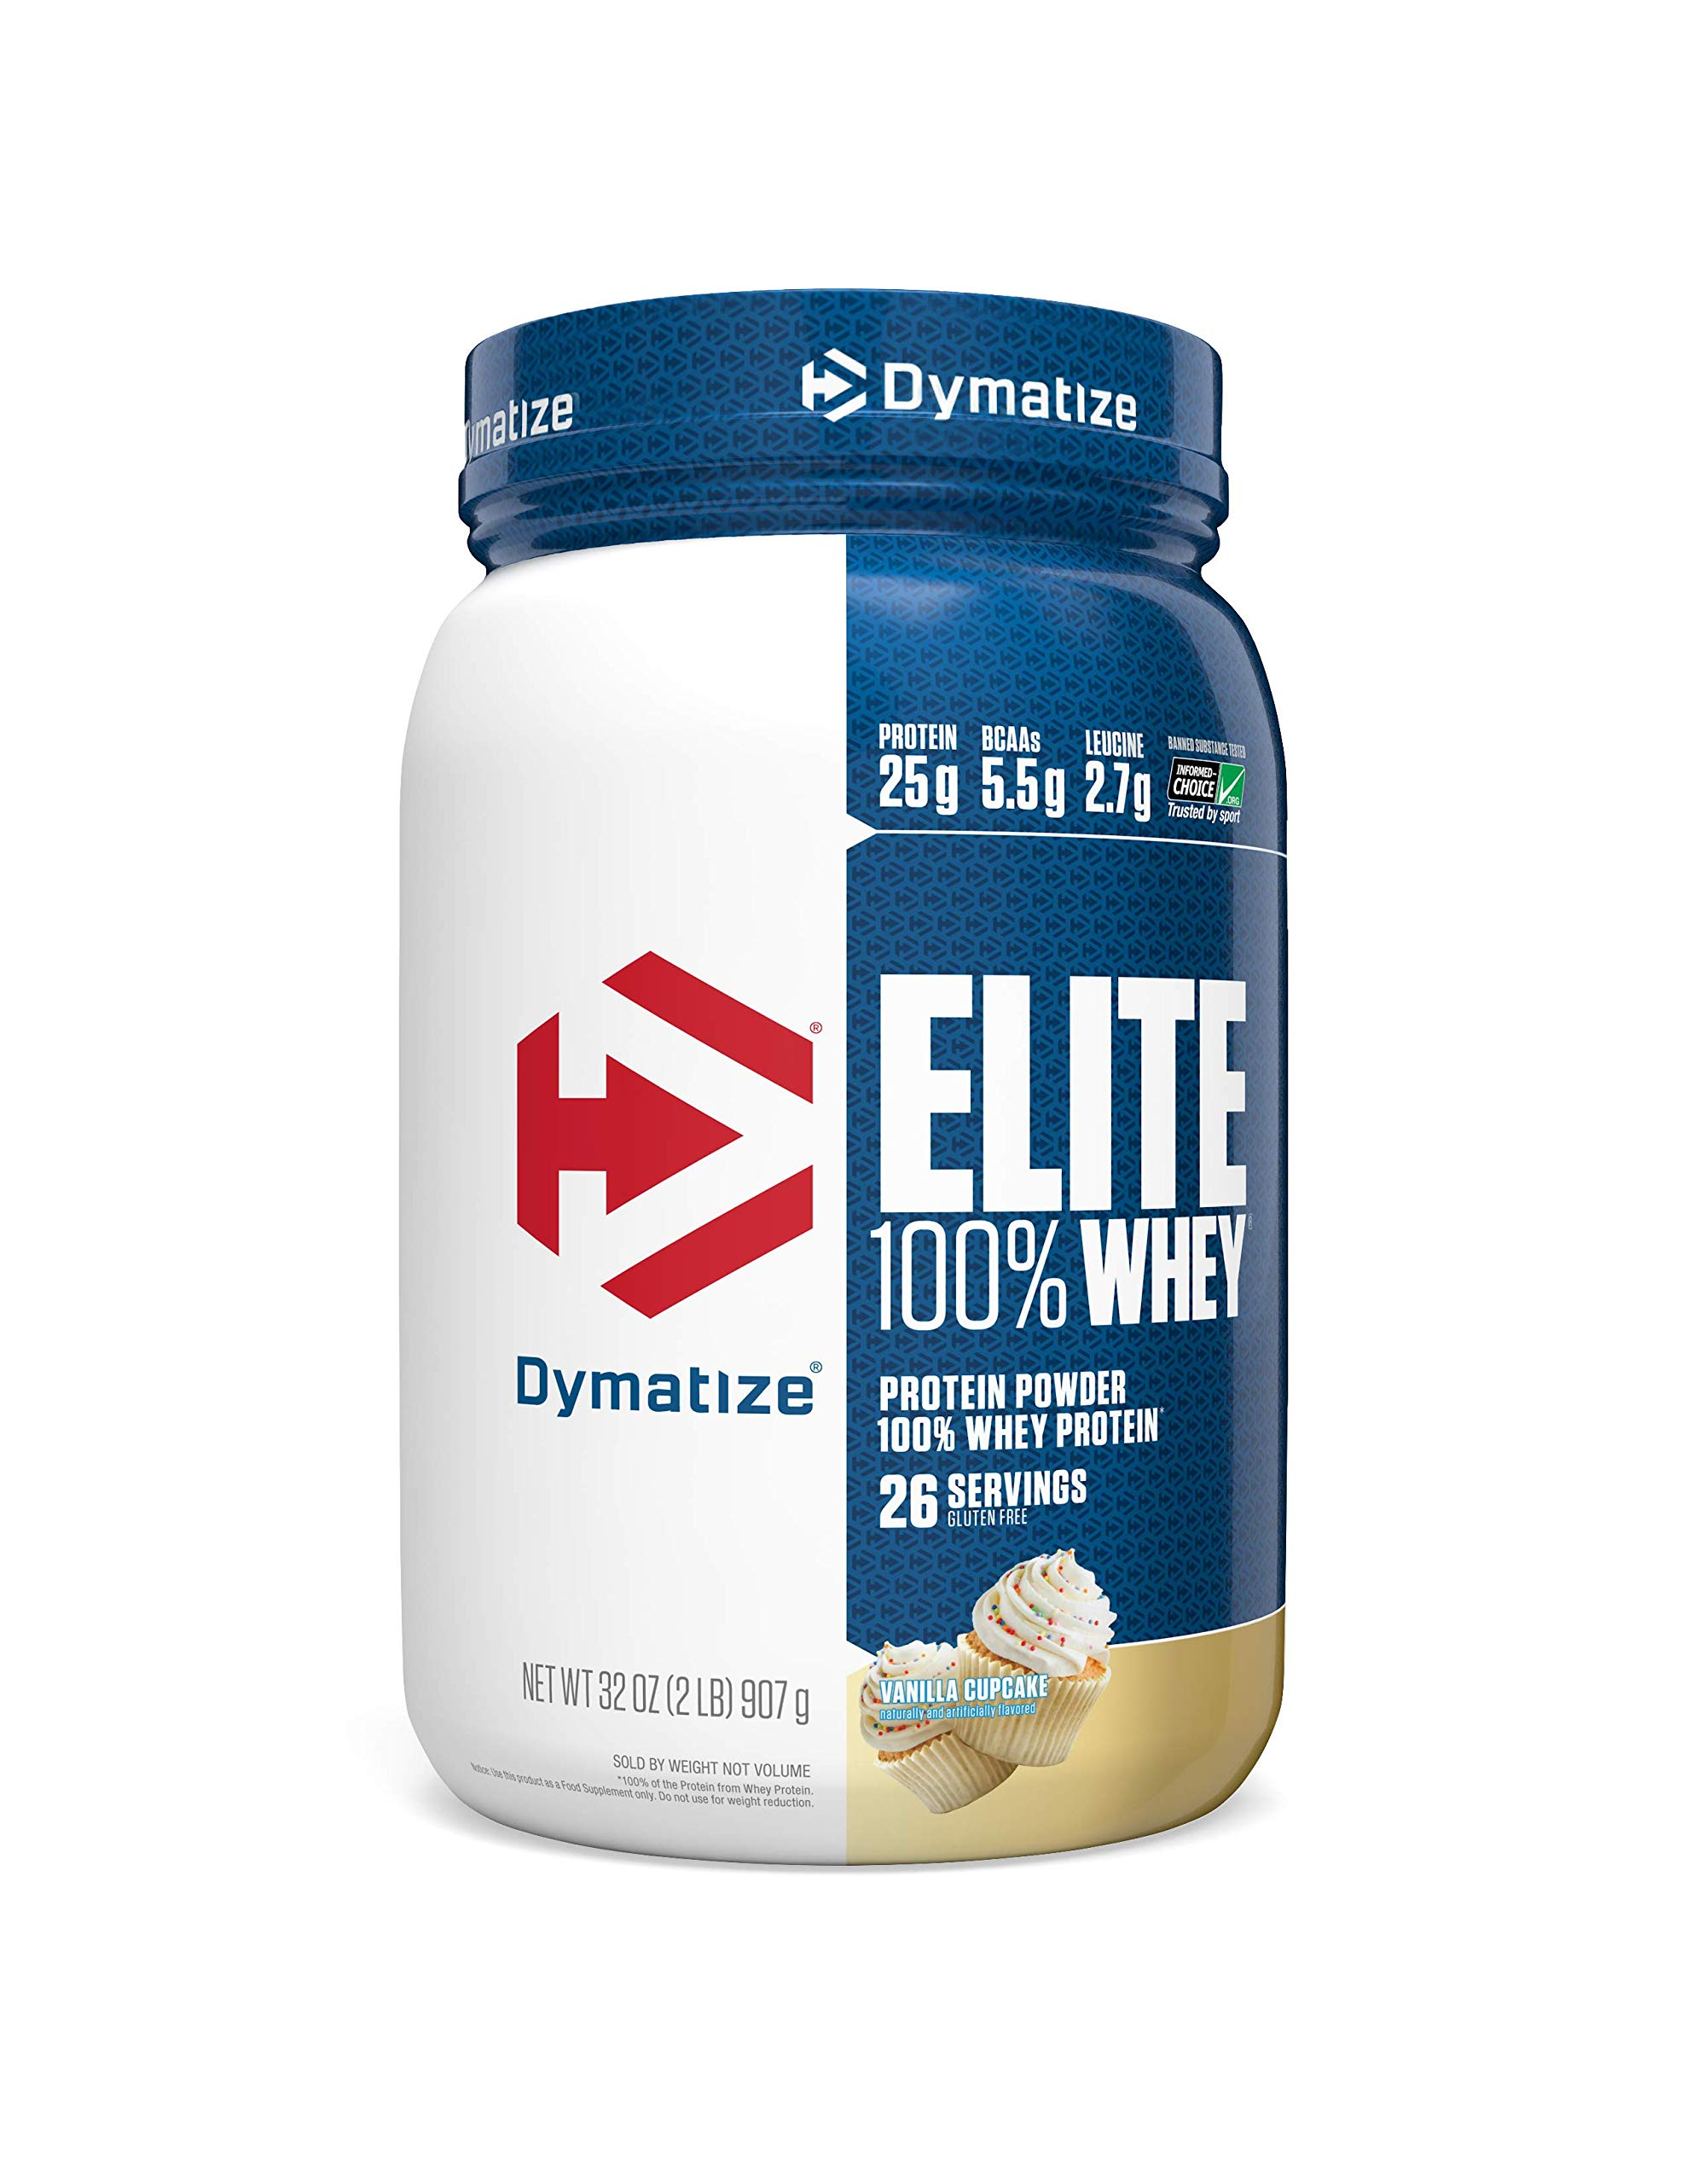 Dymatize Elite 100% Whey Protein Powder, Take Pre Workout or Post Workout, Quick Absorbing & Fast Digesting, Vanilla Cupcake, 2 Pound by Dymatize